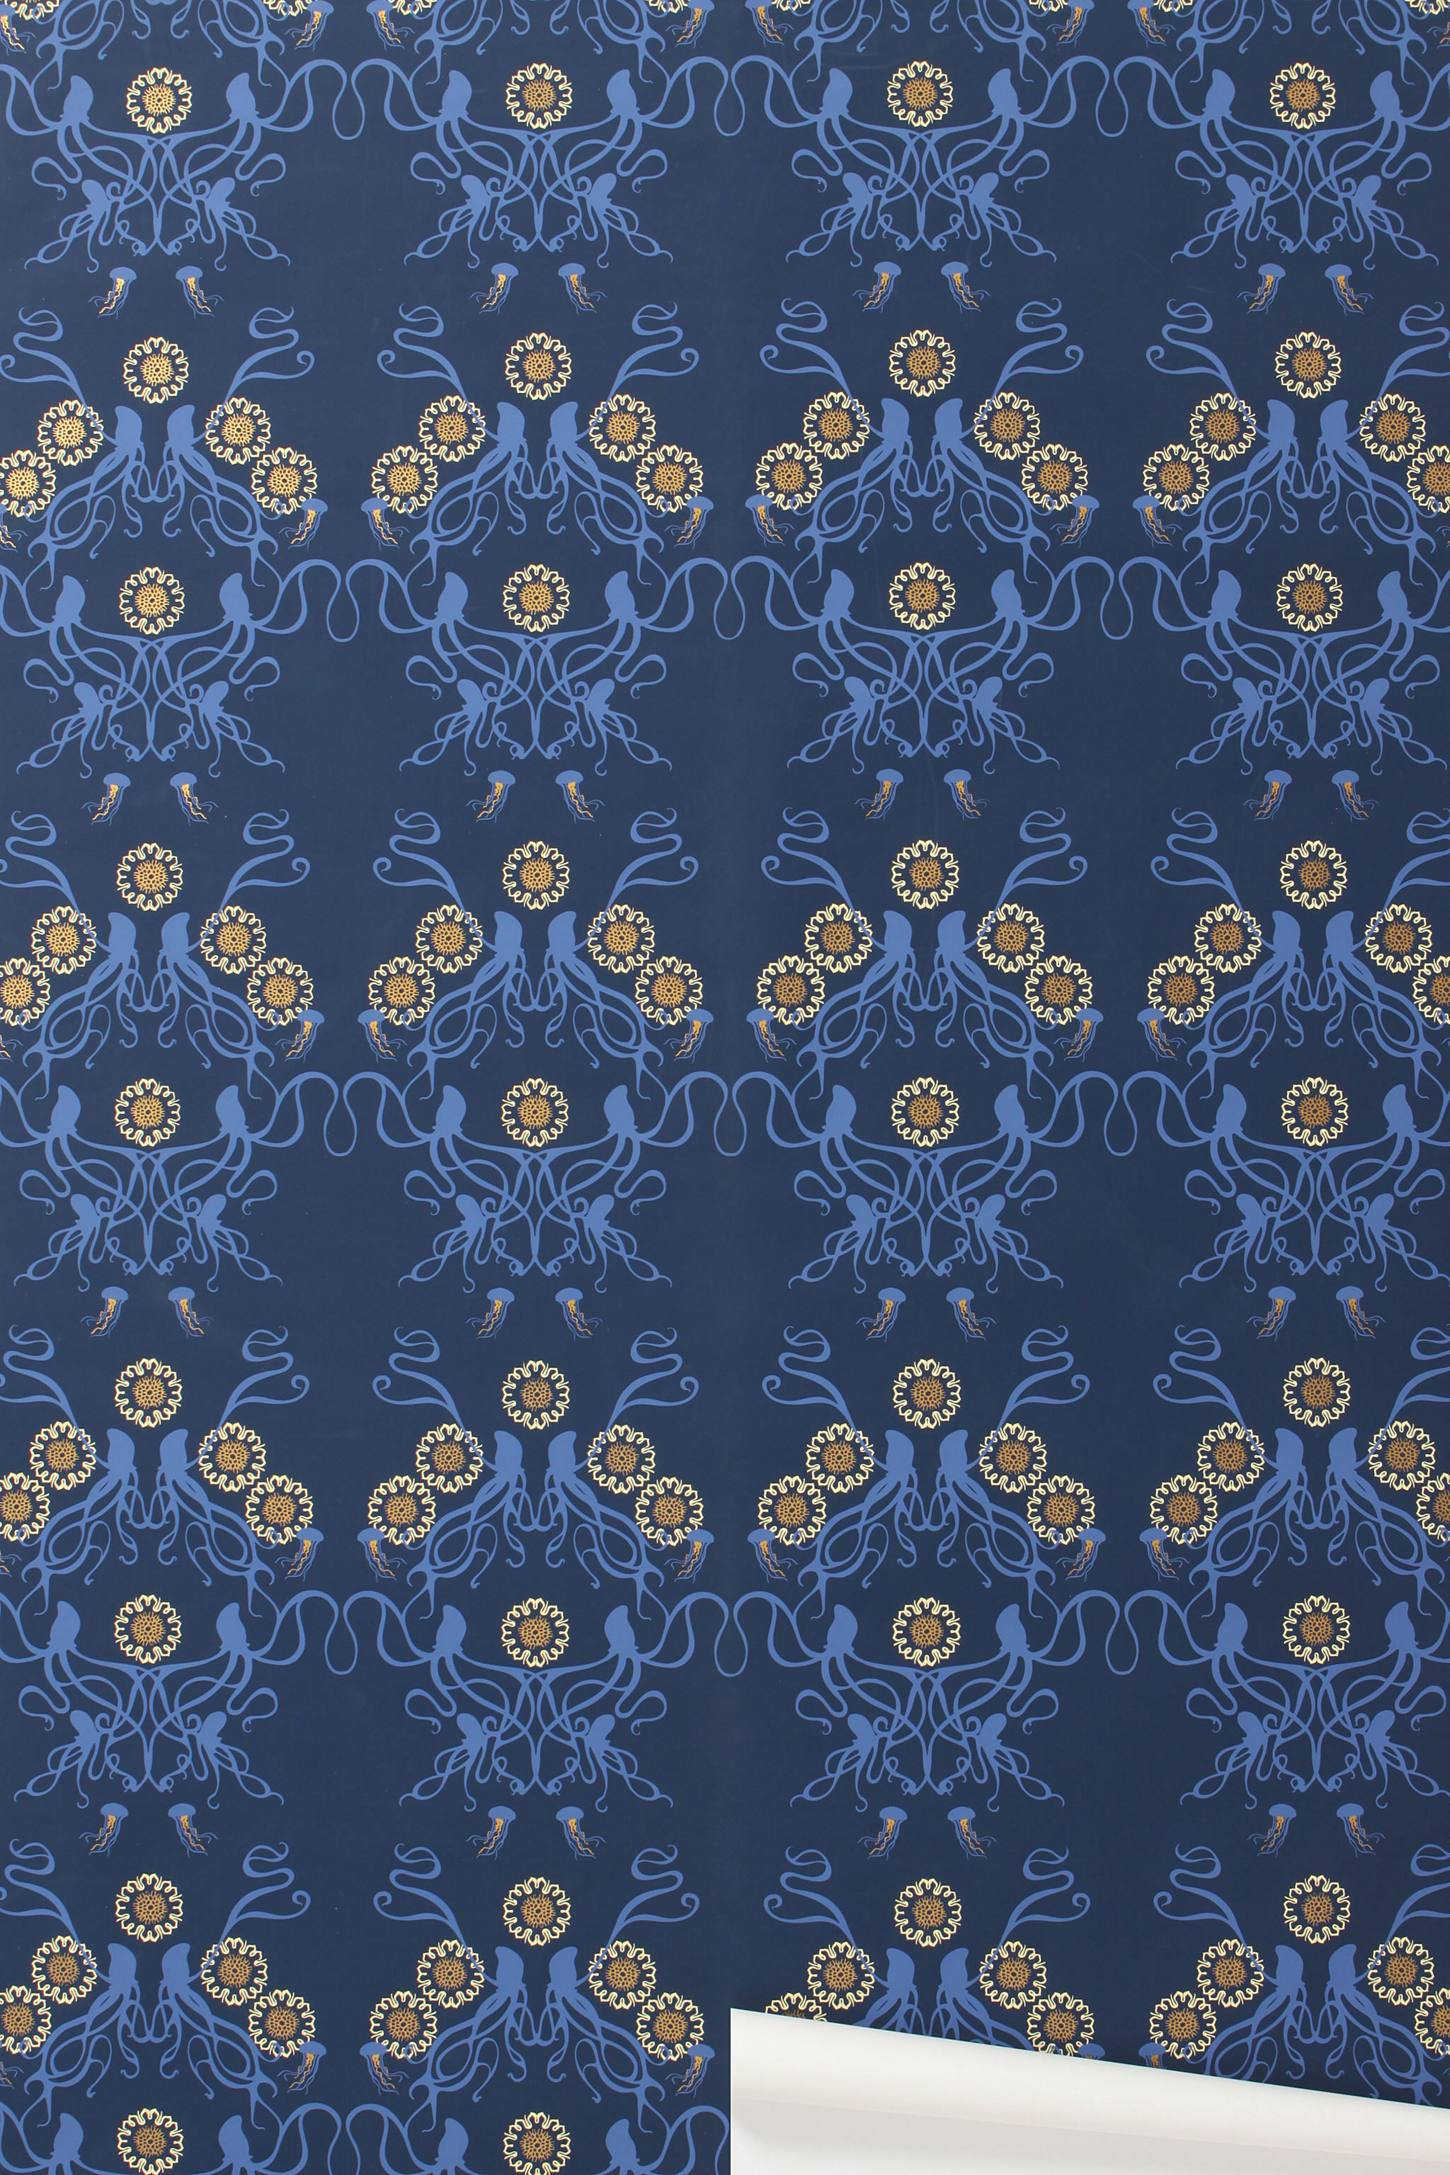 Octopus Garden Wallpaper